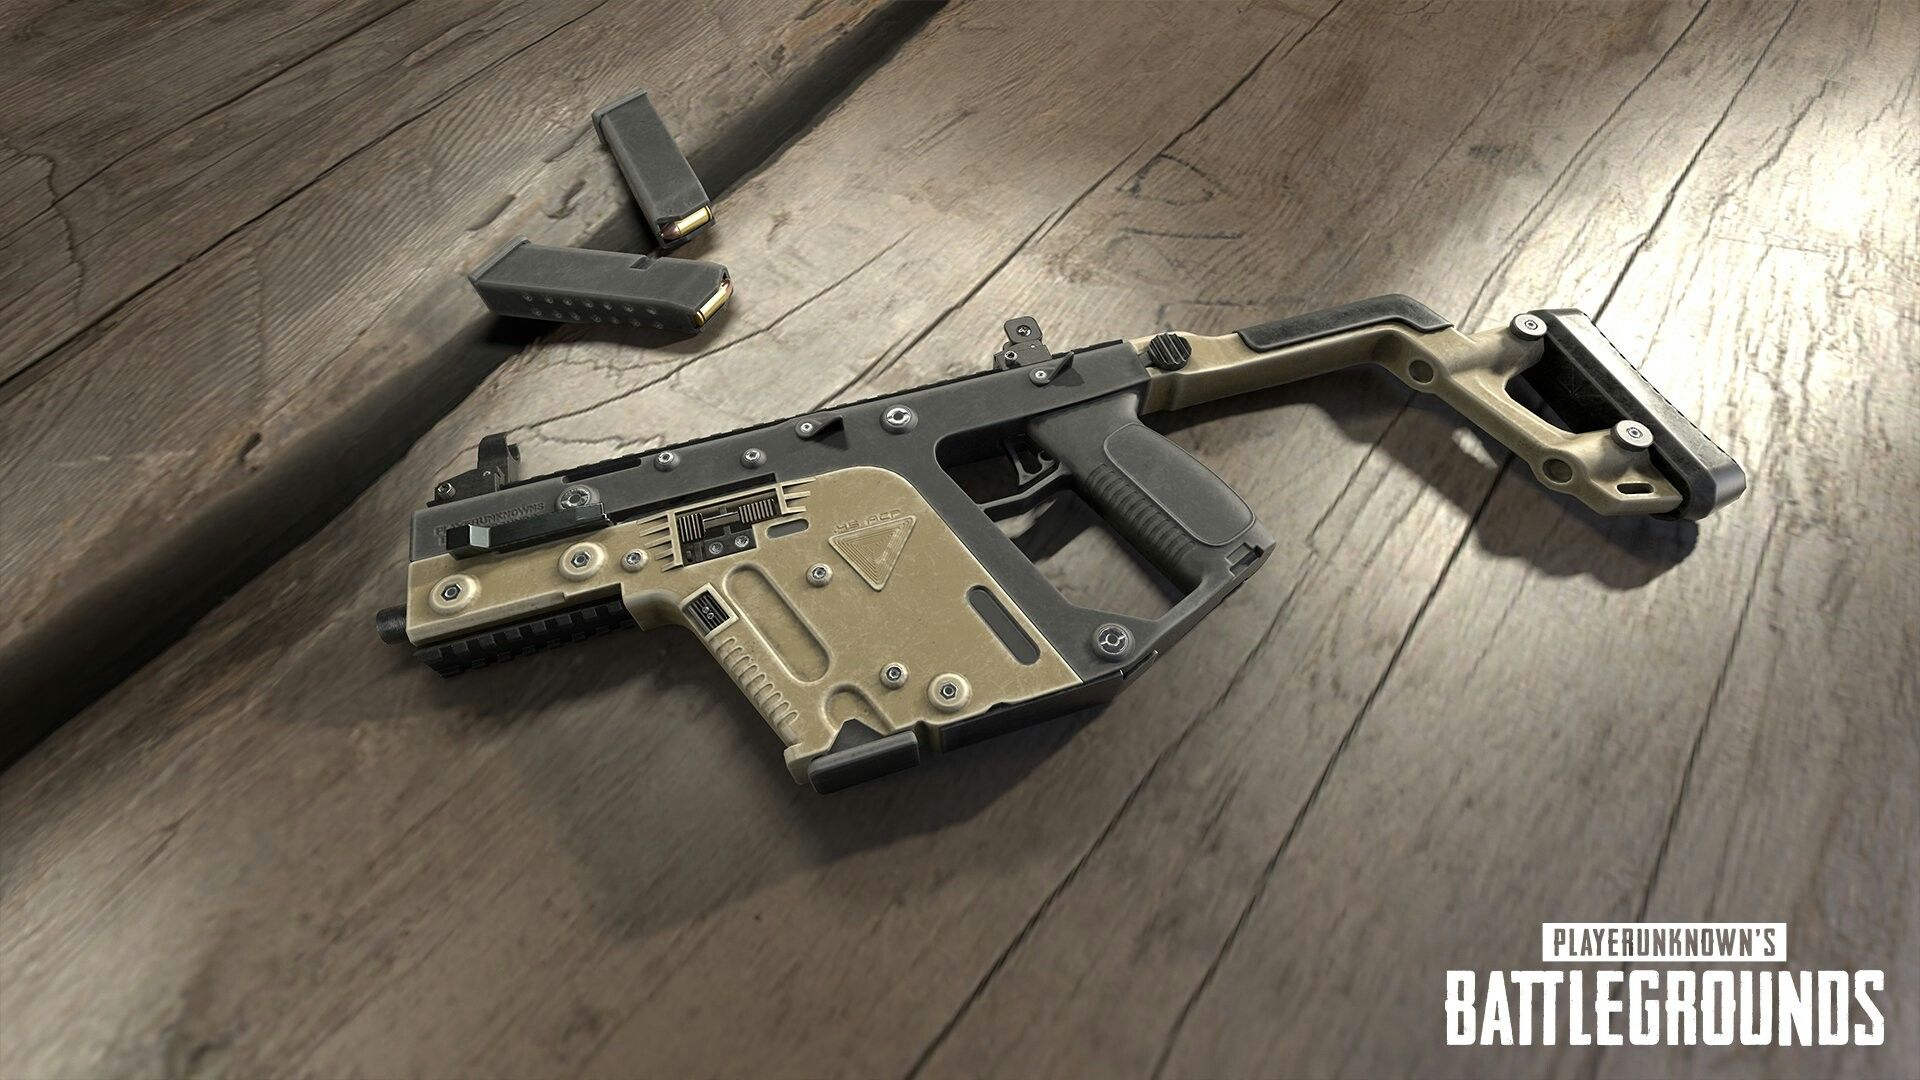 Vector is beutifull (With images) | Gaming wallpapers, Army ...